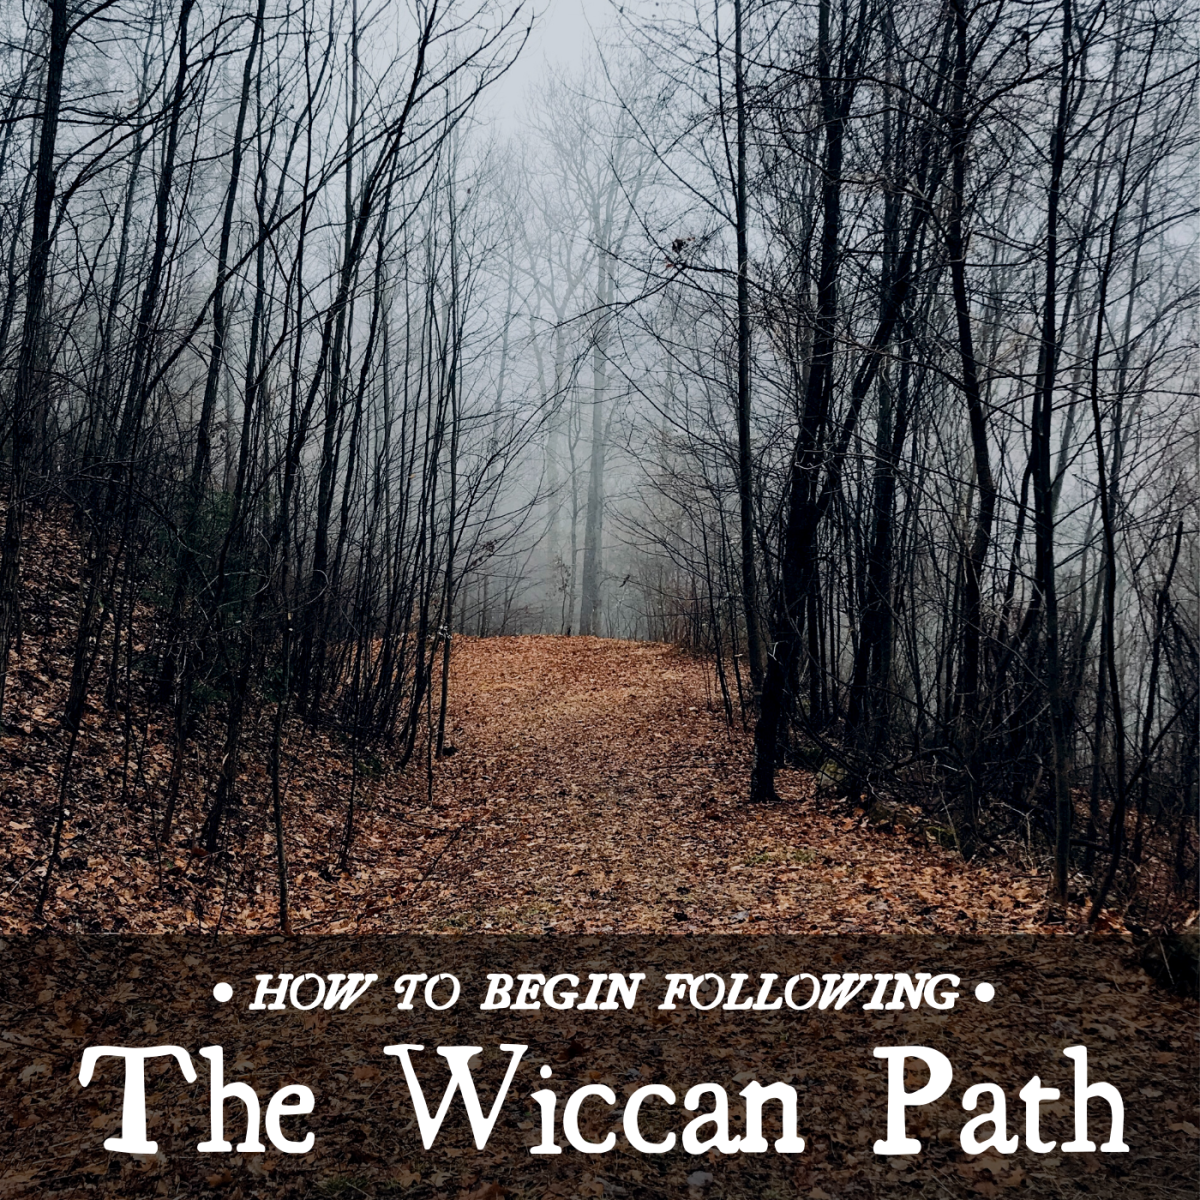 Becoming Wiccan: 7 Useful Steps to Start You on Your Path